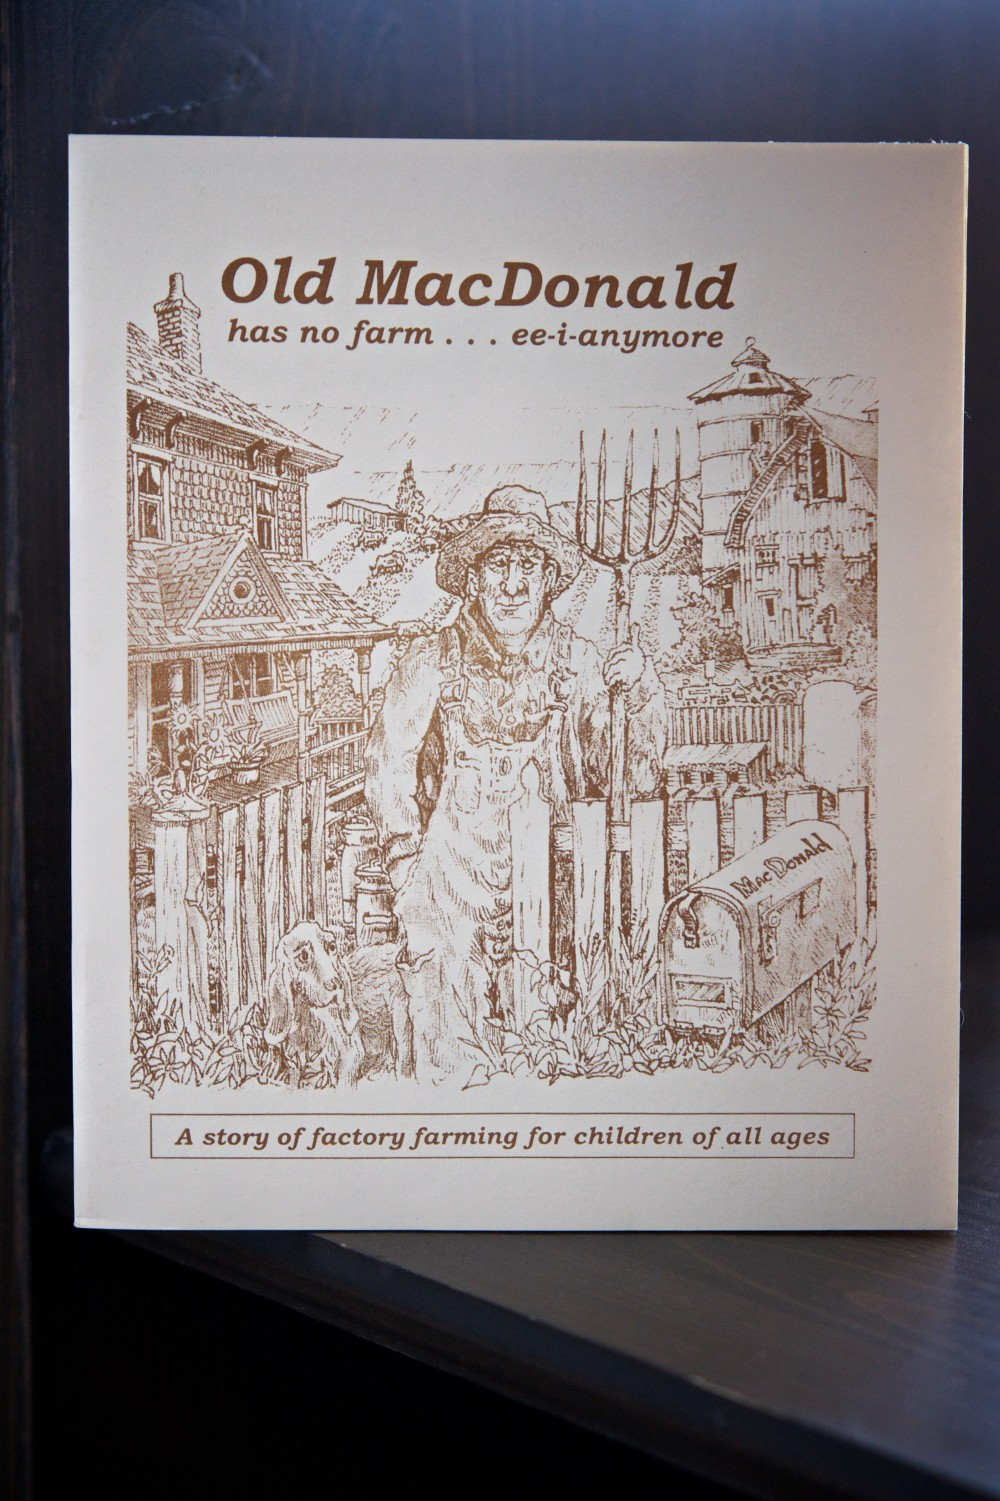 Old MacDonald has no farm book cover